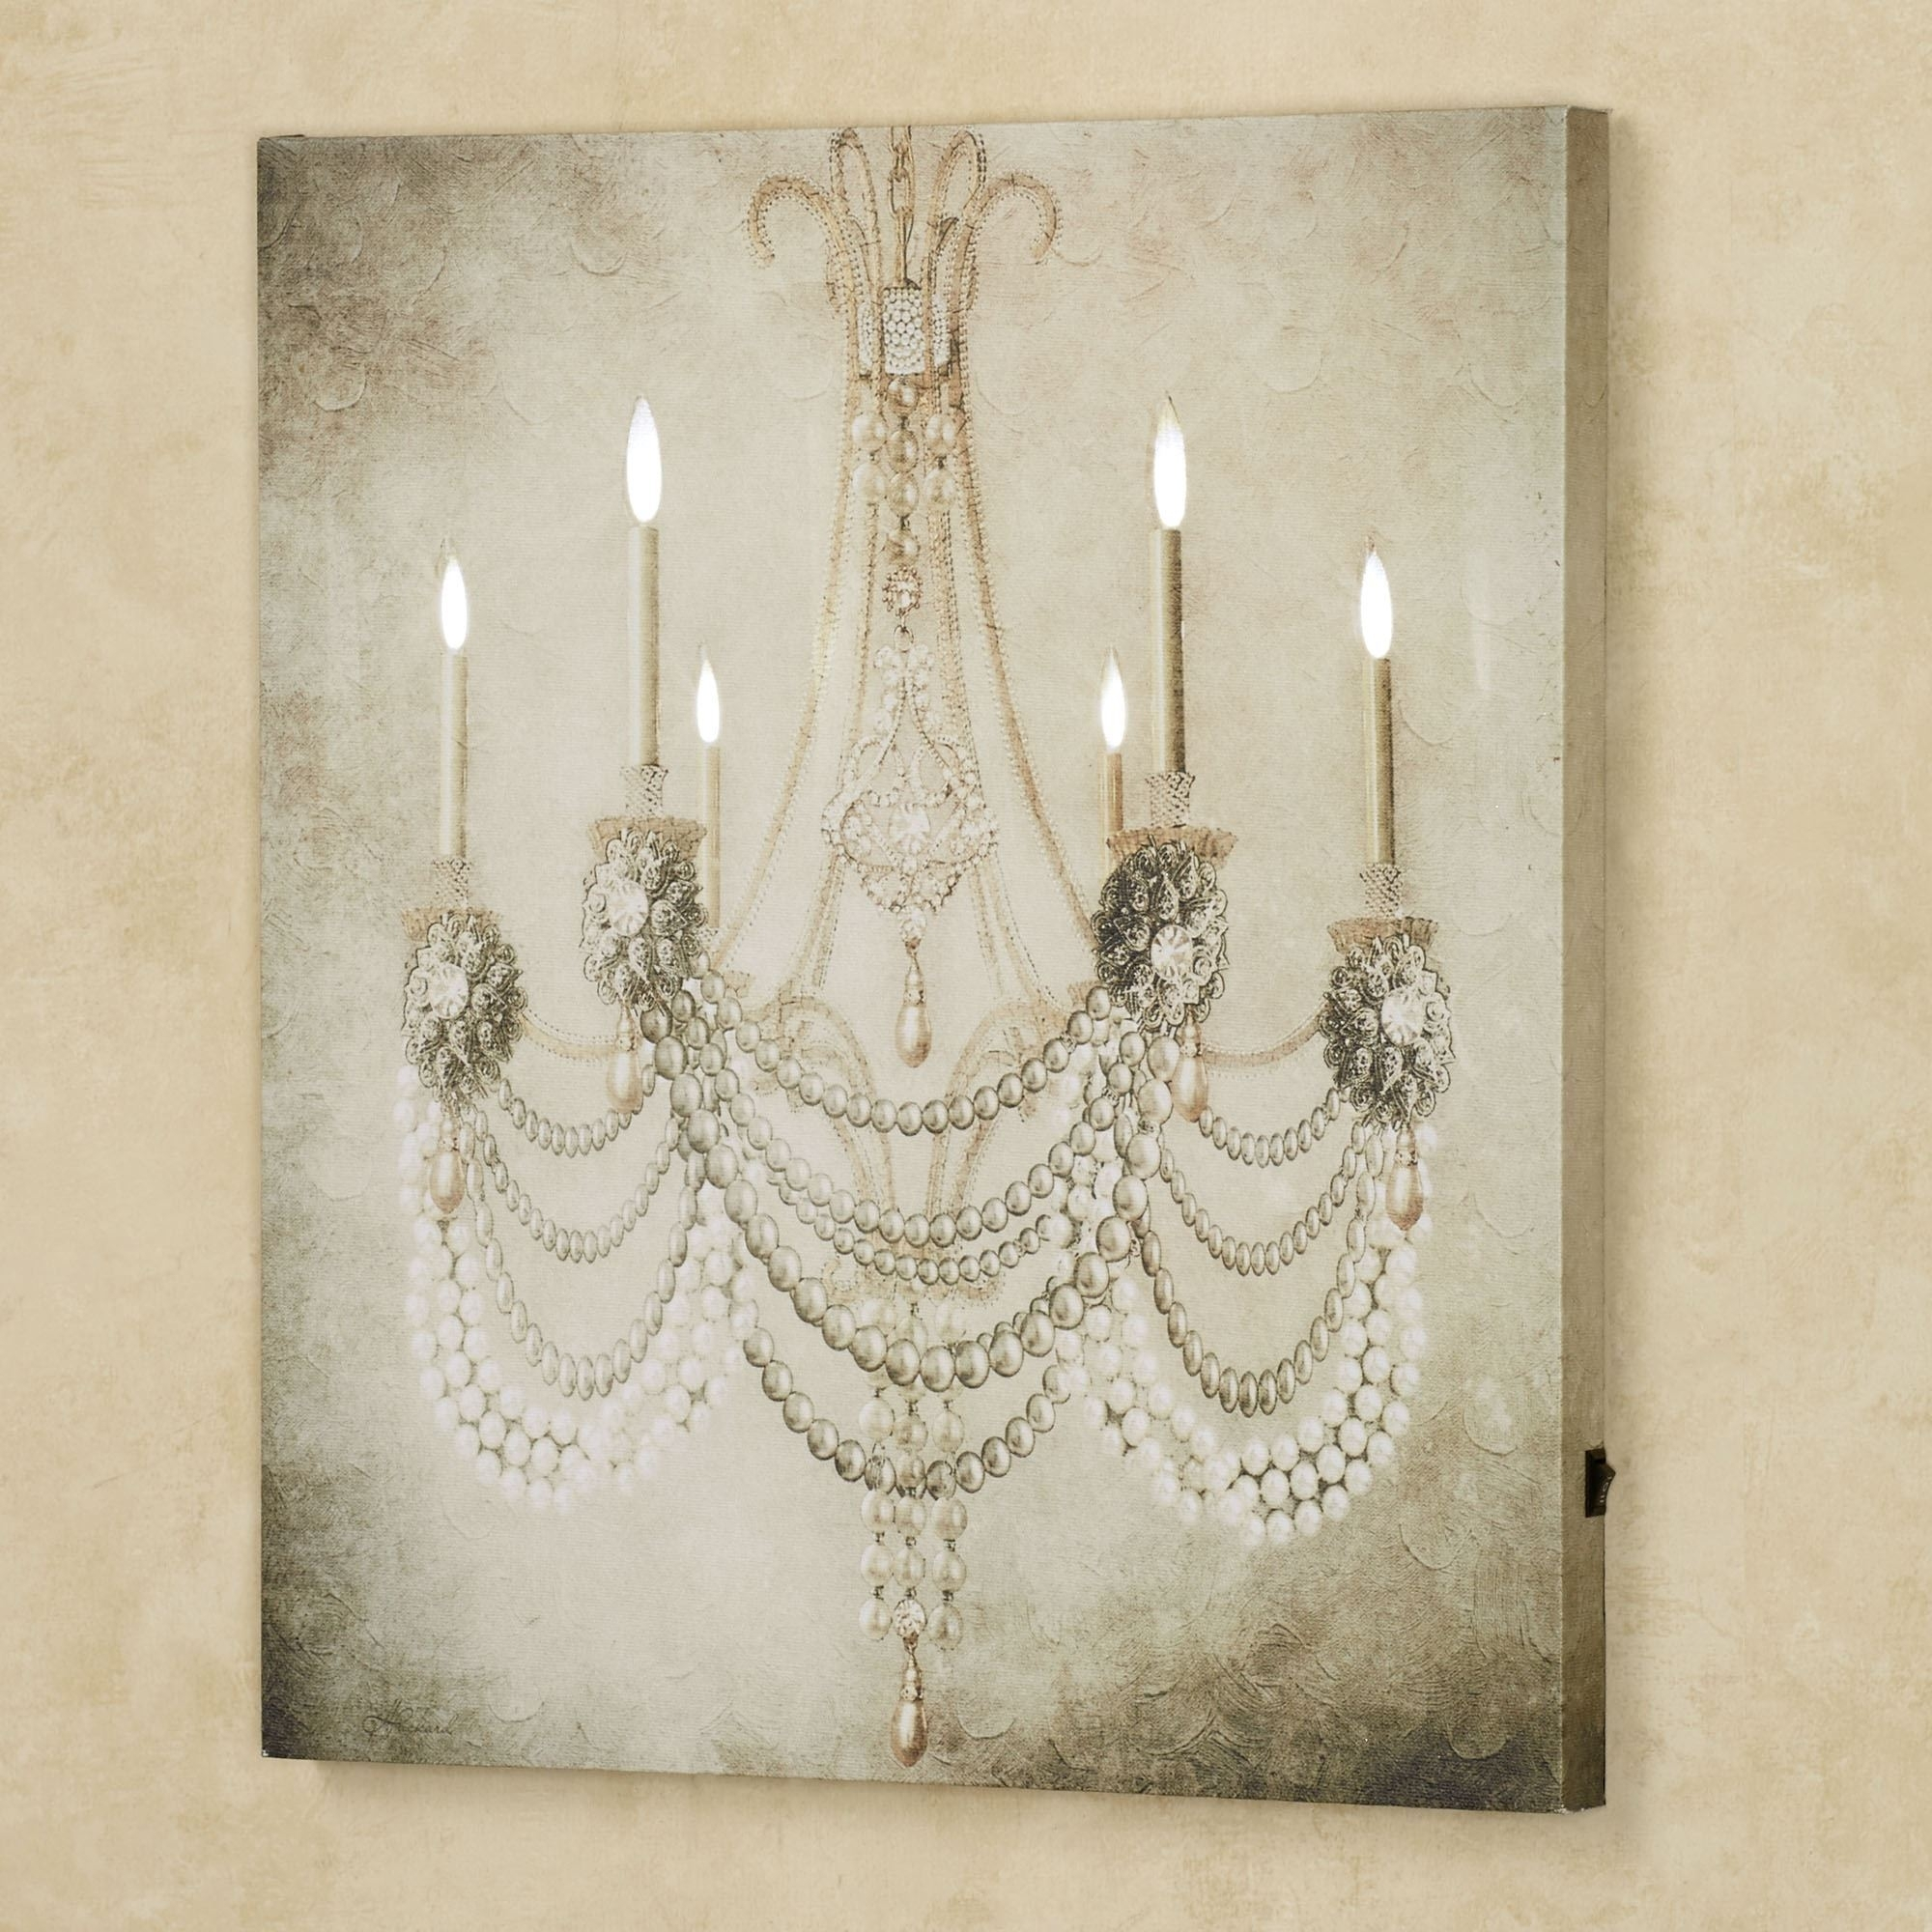 Vintage Chandelier Led Lighted Canvas Art Regarding Most Up To Date Chandelier Wall Art (Gallery 2 of 20)